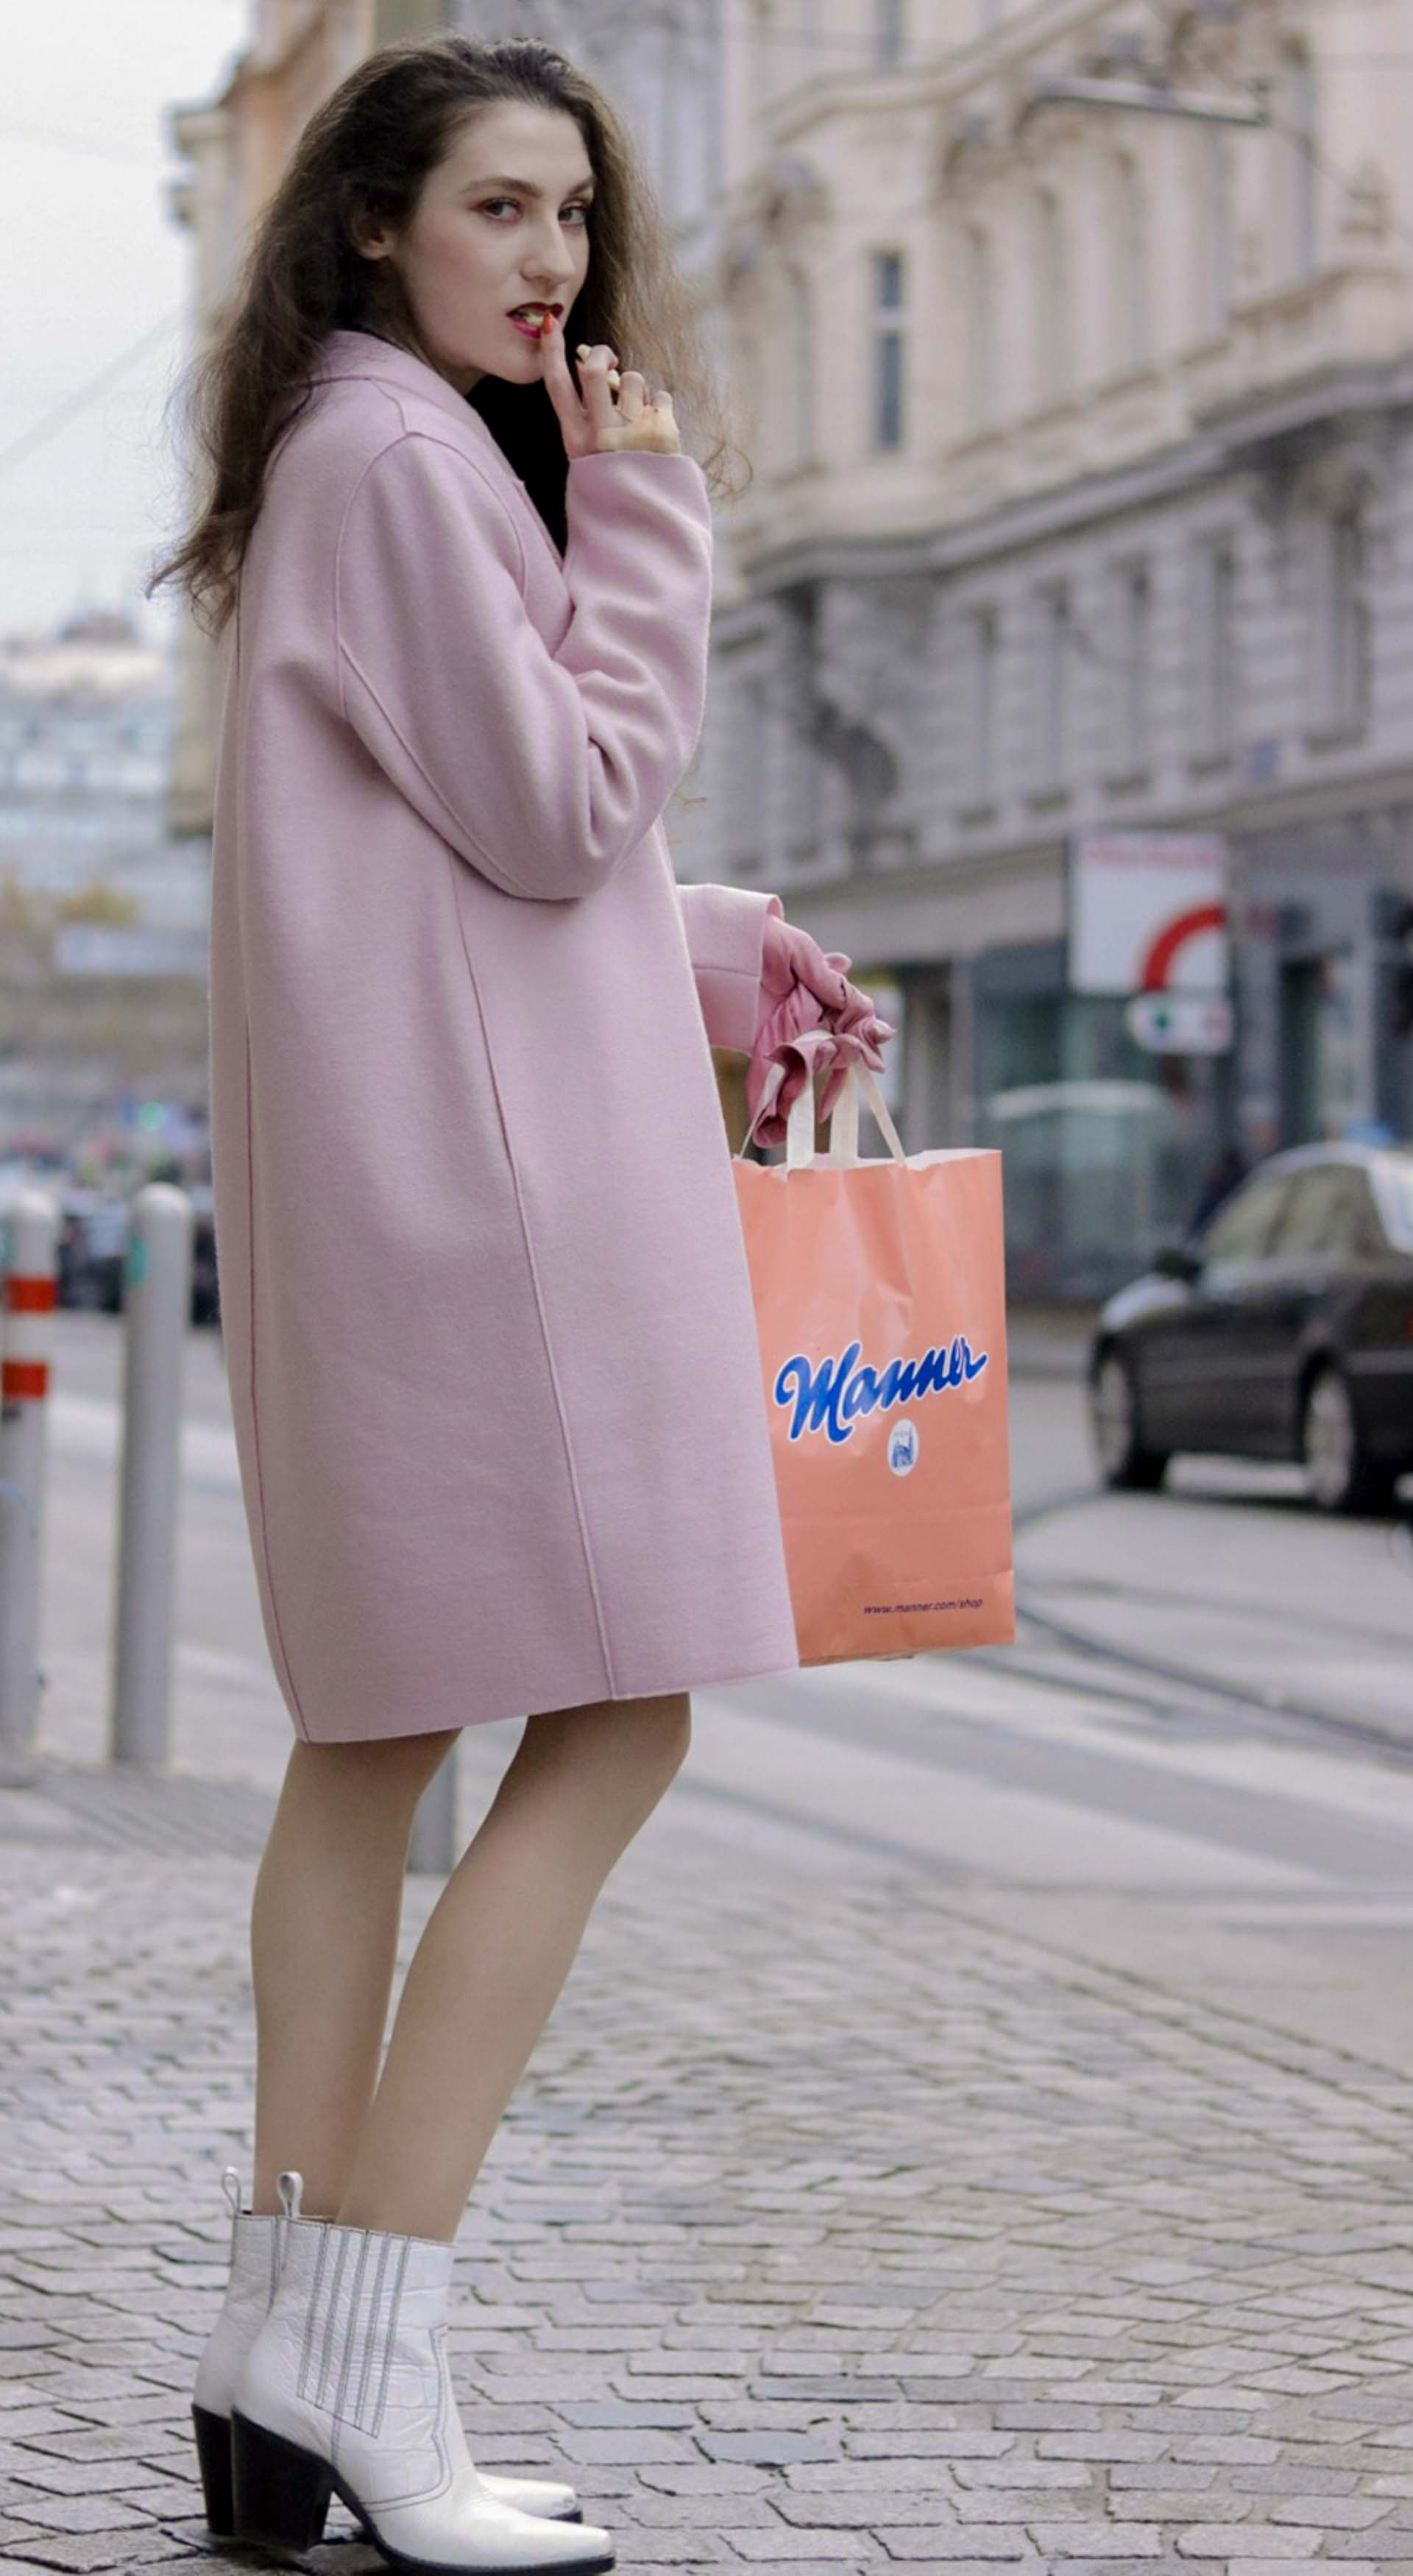 Beautiful Slovenian Fashion Blogger Veronika Lipar of Brunette from Wall wearing Harris Wharf London pink oversized coat, Ganni white cowboy boots, carrying pink Manner shopping bag eating Manner wafers on the street in Wein Austria